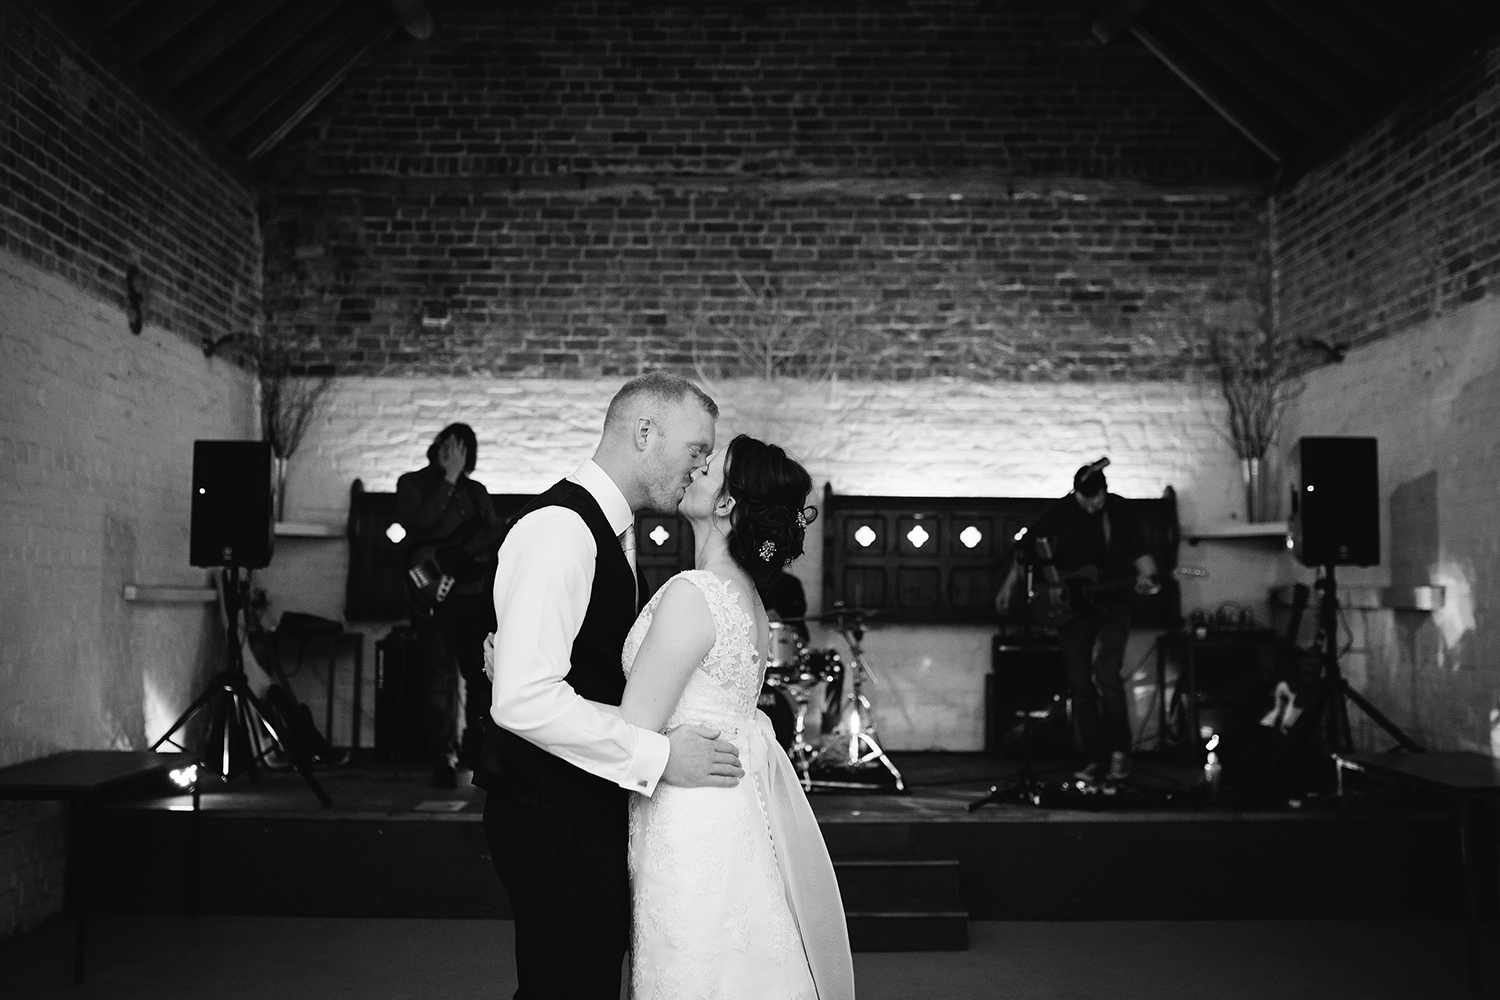 Wedding Photographer Worcester Springhill Barn 089.jpg